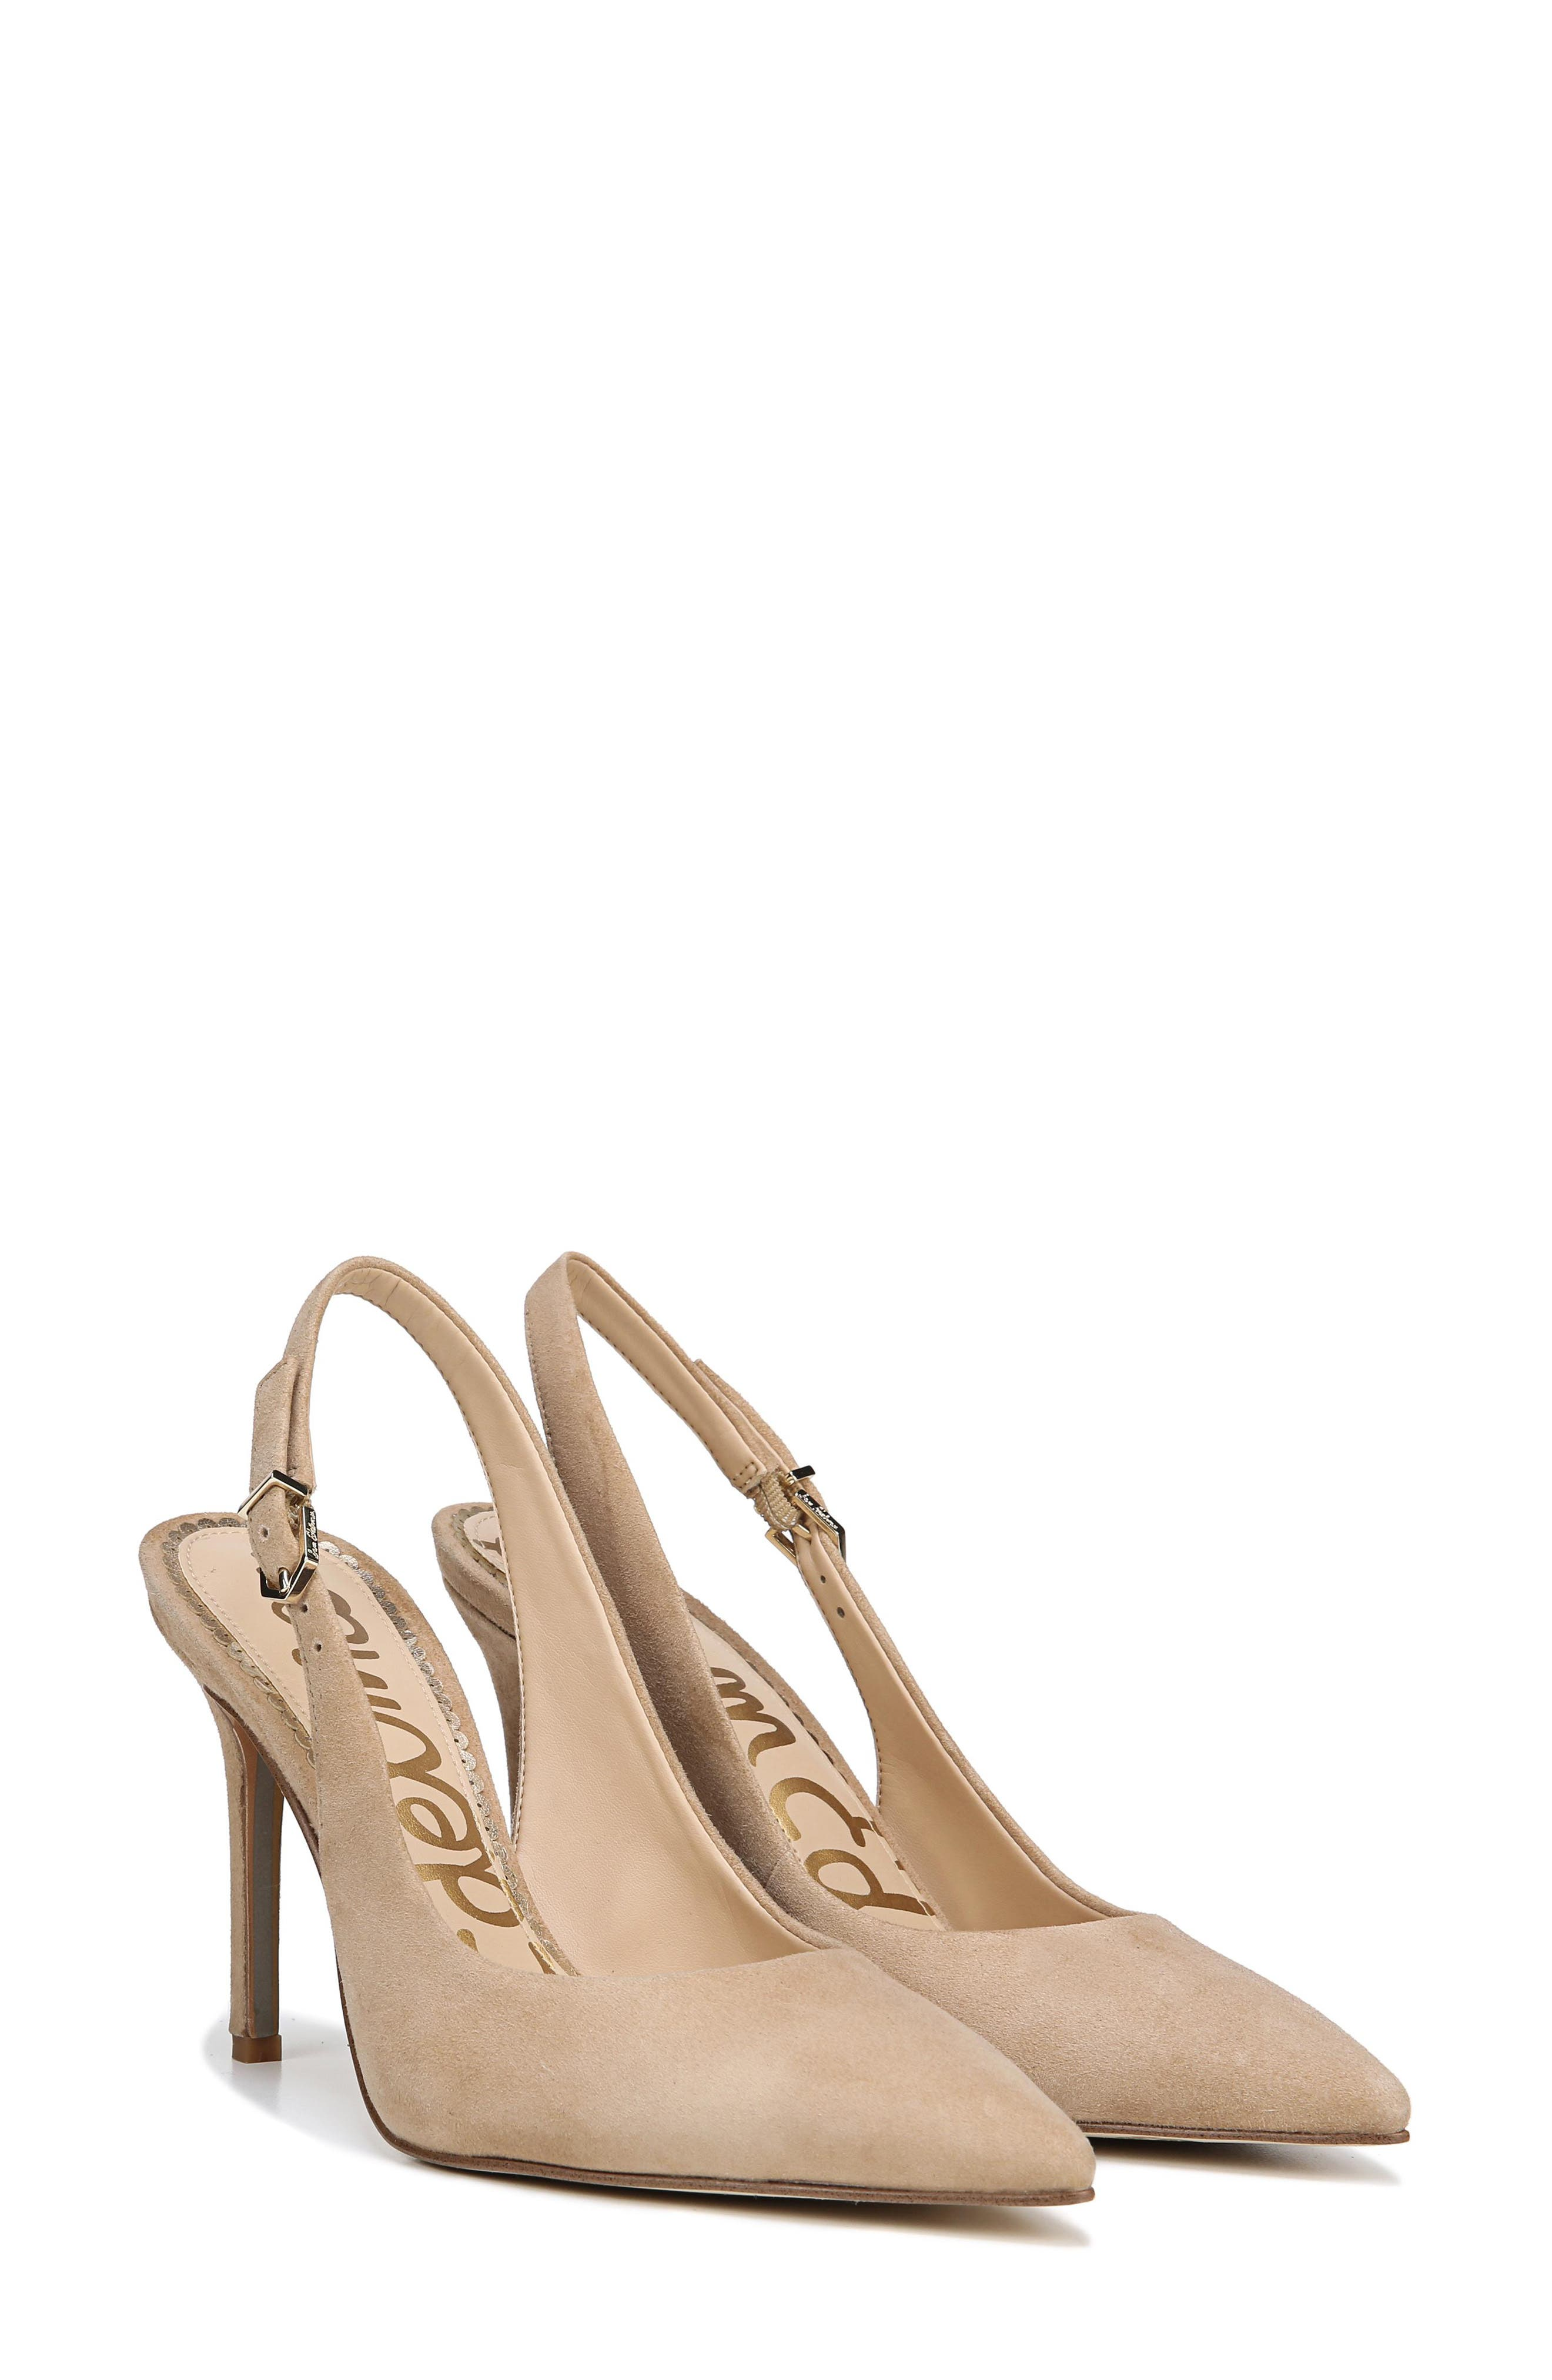 Hastings Slingback Pump,                             Alternate thumbnail 9, color,                             OATMEAL SUEDE LEATHER